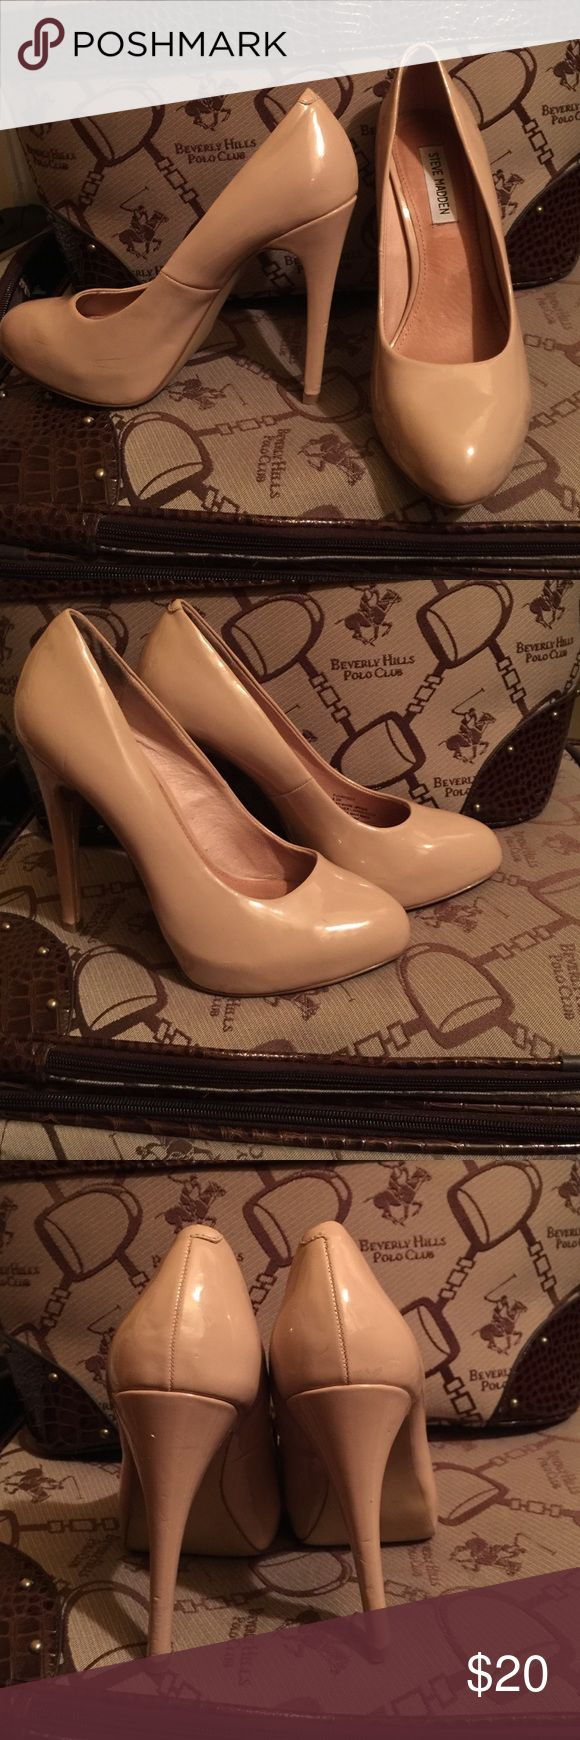 Steve Madden Cream High Heels They're in great condition. Only wore once or twice. Steve Madden Shoes Heels